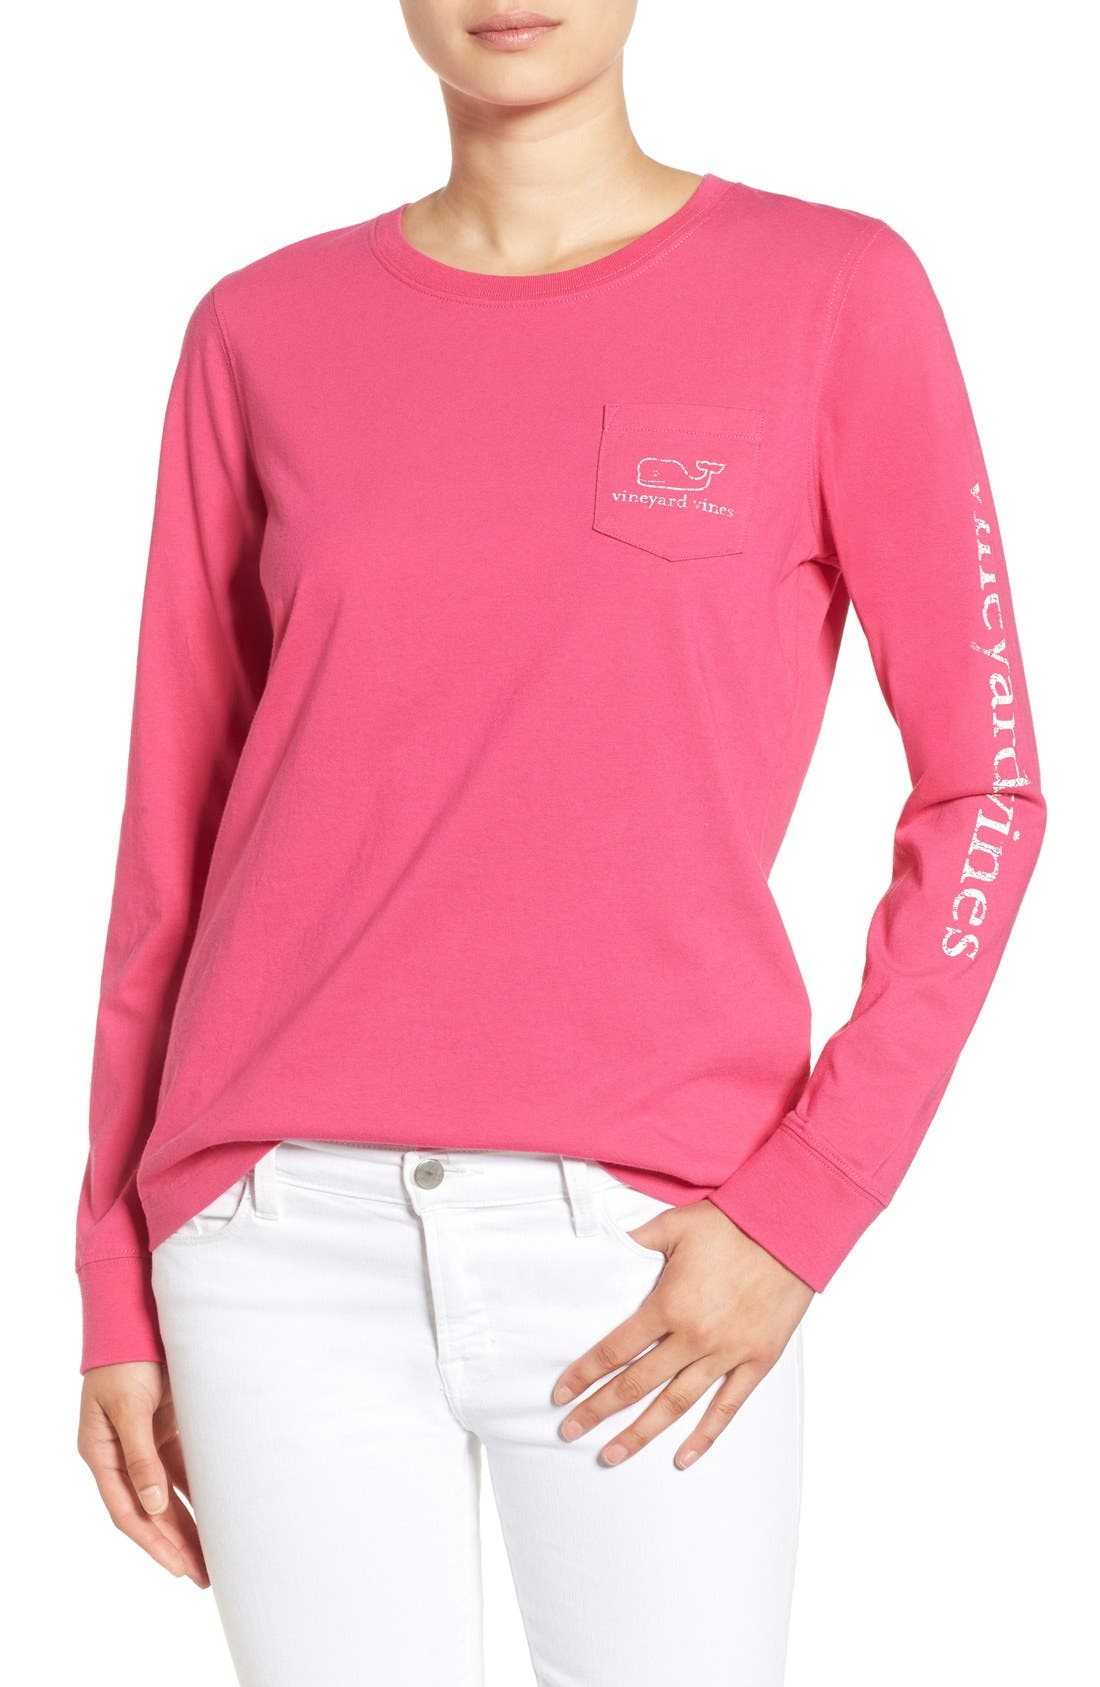 Main Image - Vineyard Vines Whale Graphic Long Sleeve Tee